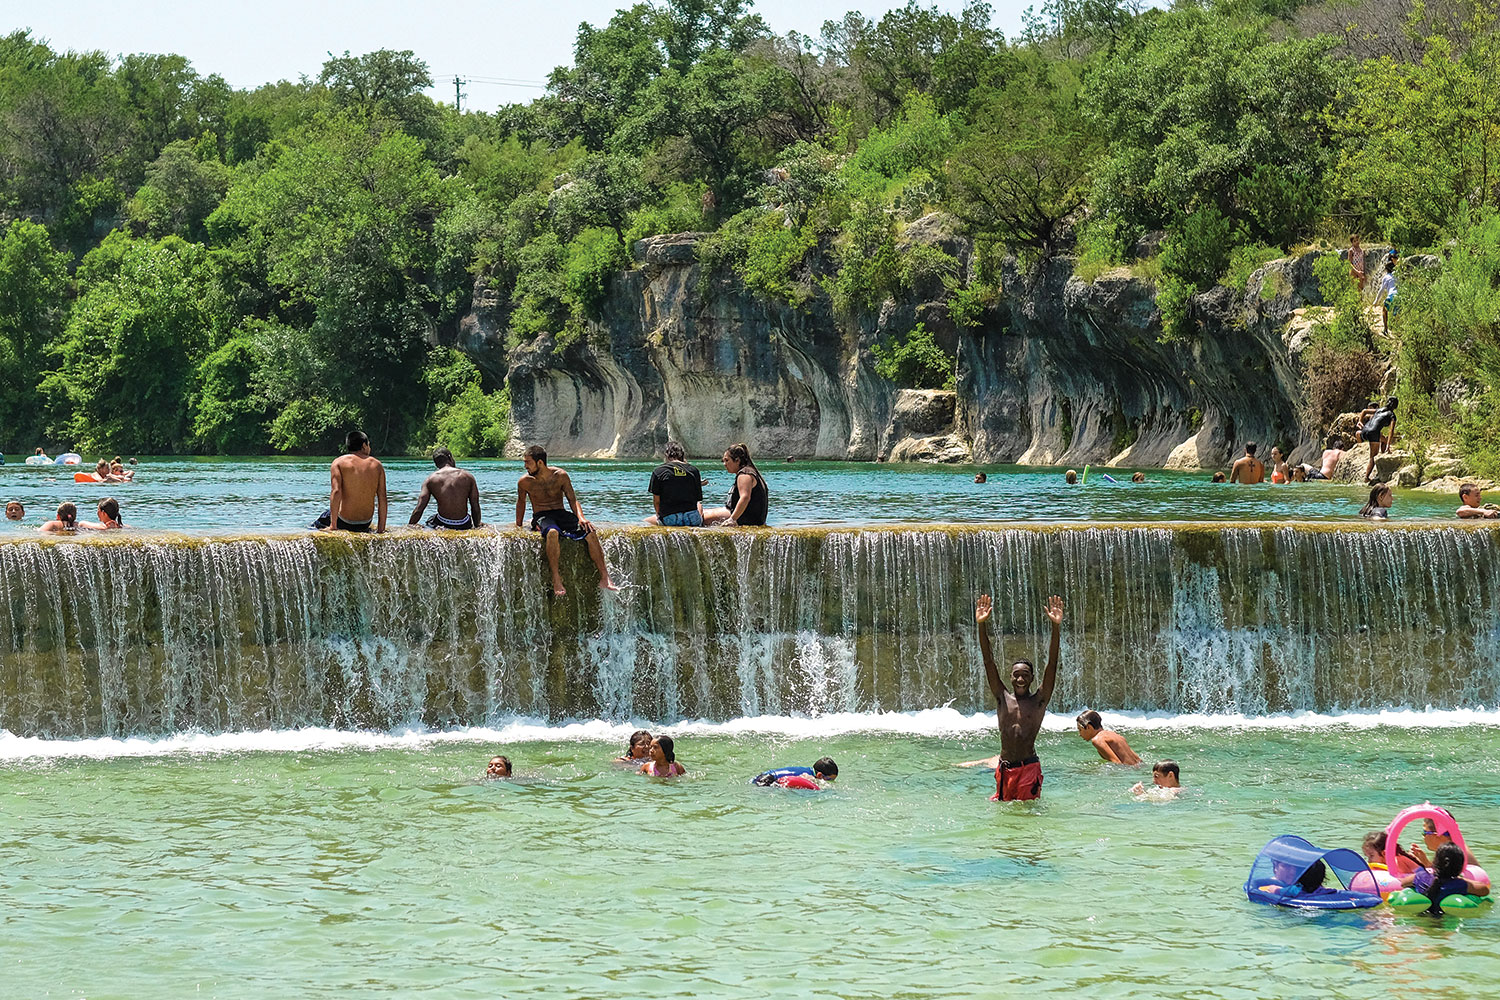 People swimming at Blue Hole Park in Georgetown, TX